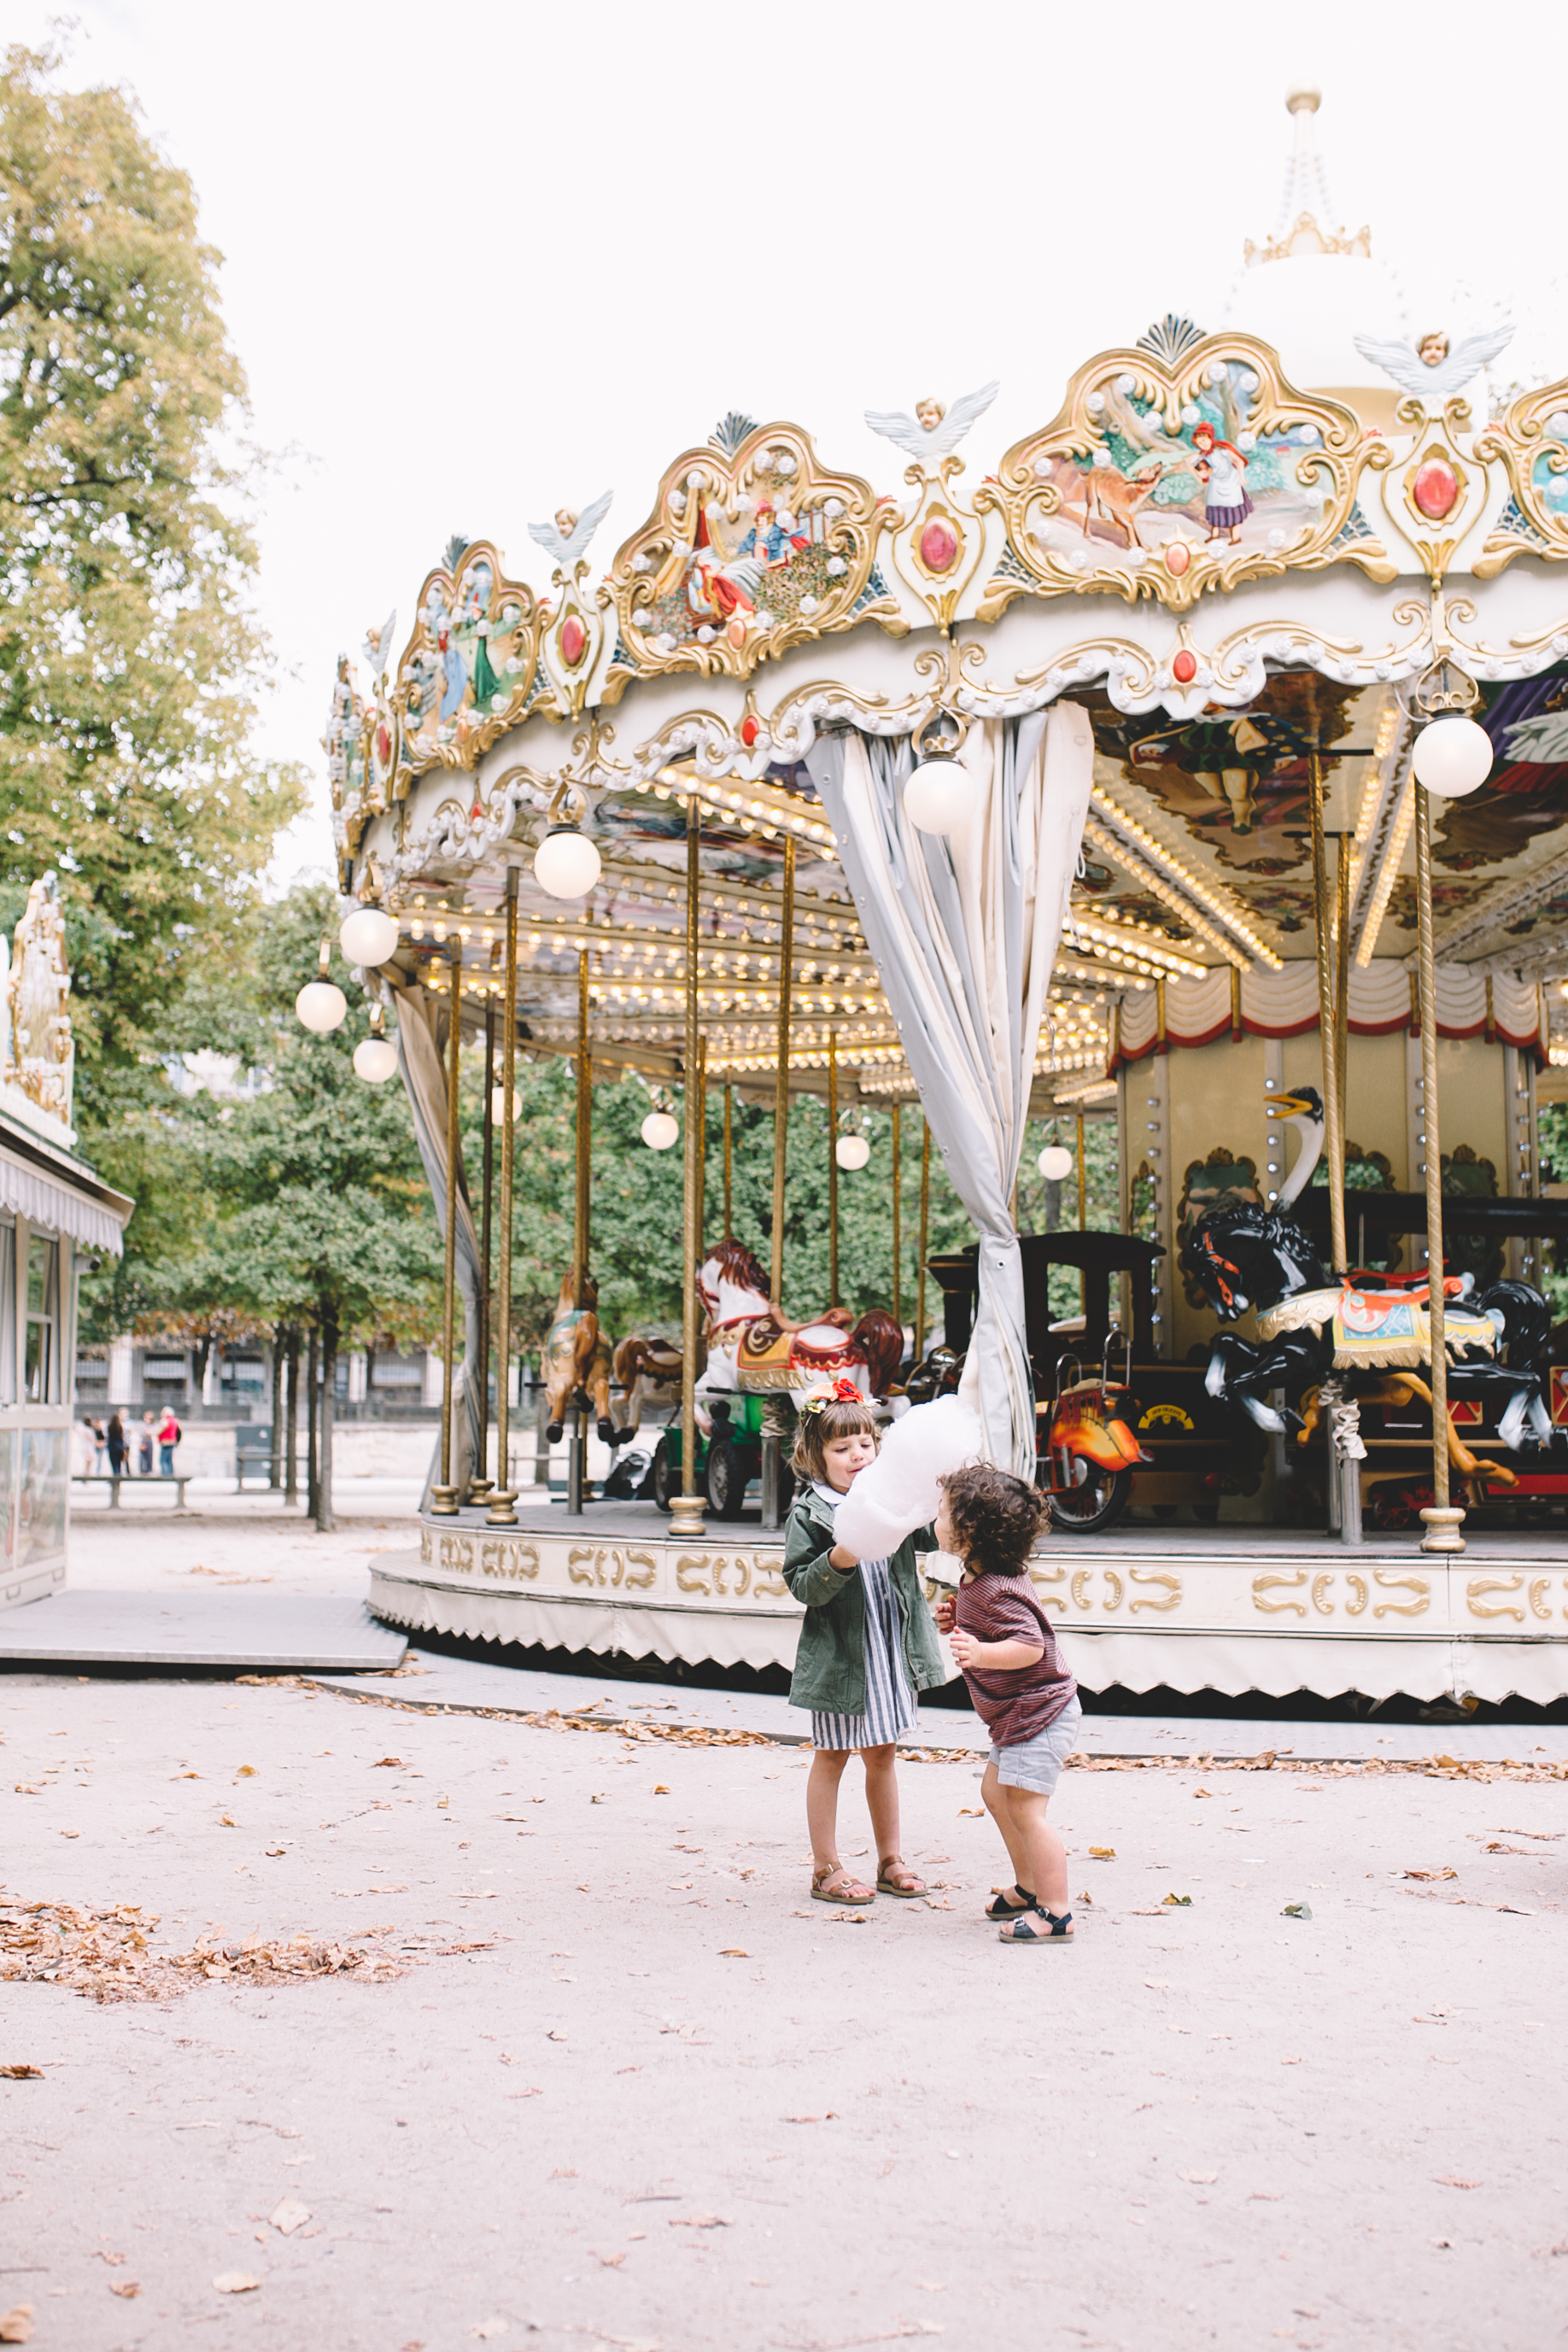 Jardin des Tuileries Paris France Carousel  (7 of 7).jpg